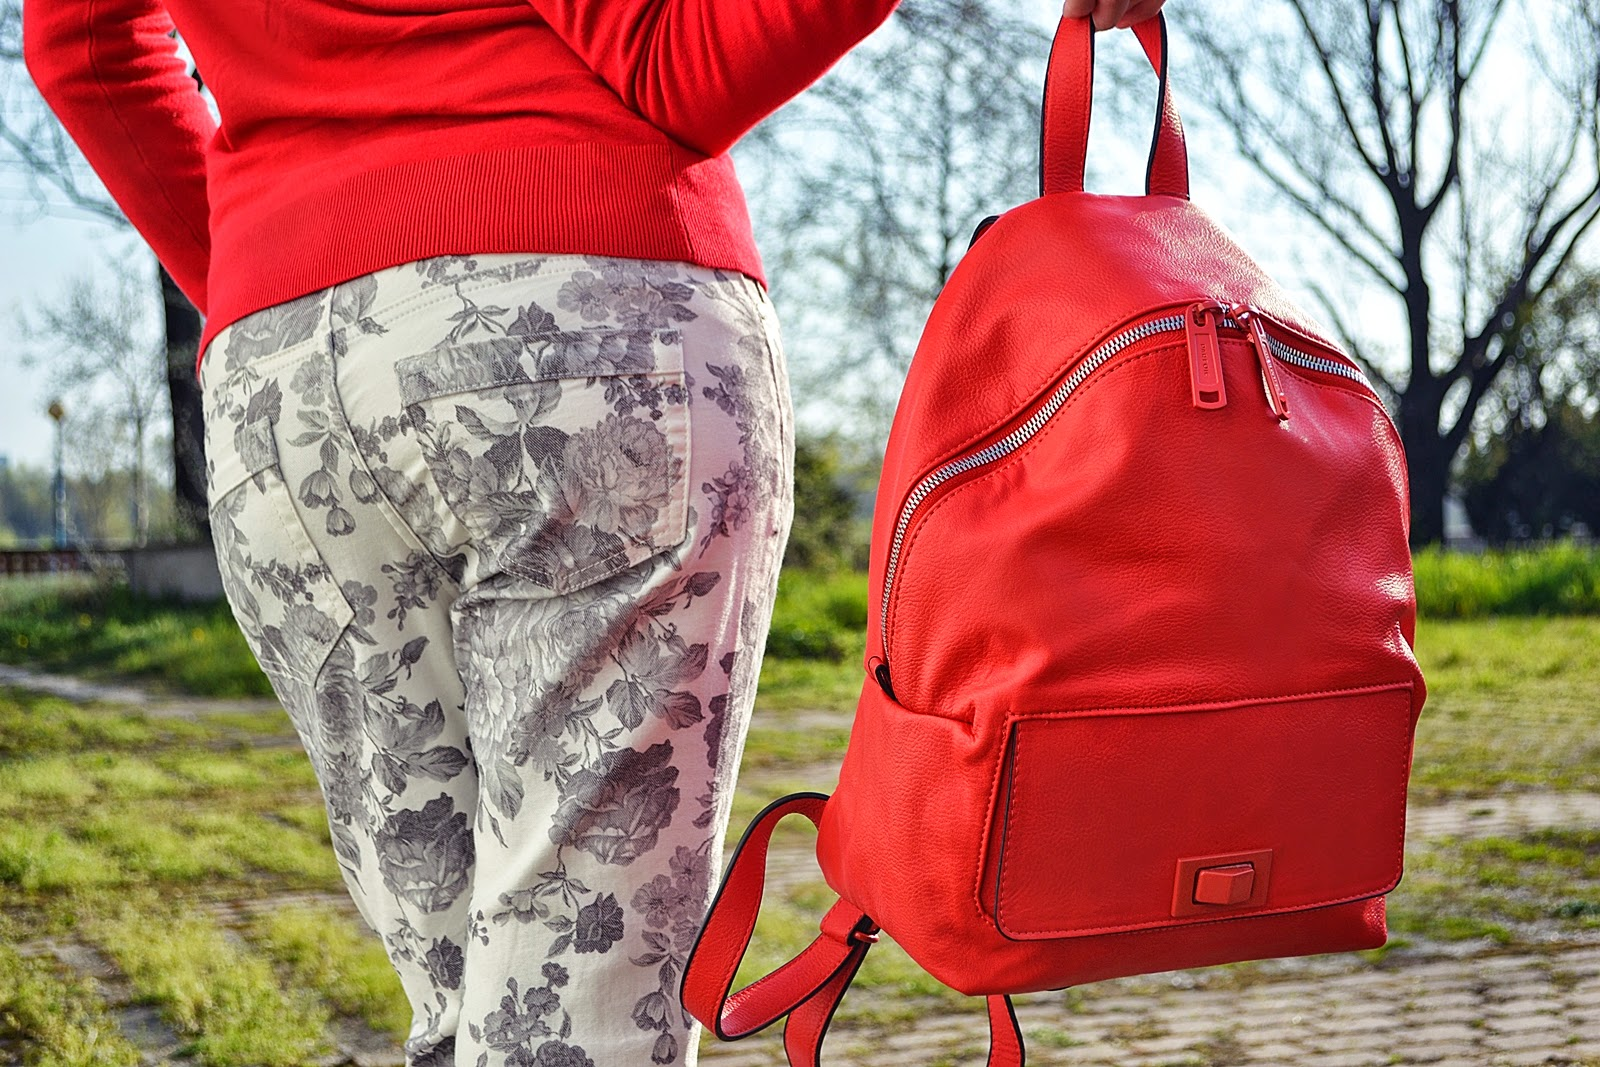 To school only with backpack Katharine-fashion is beautiful